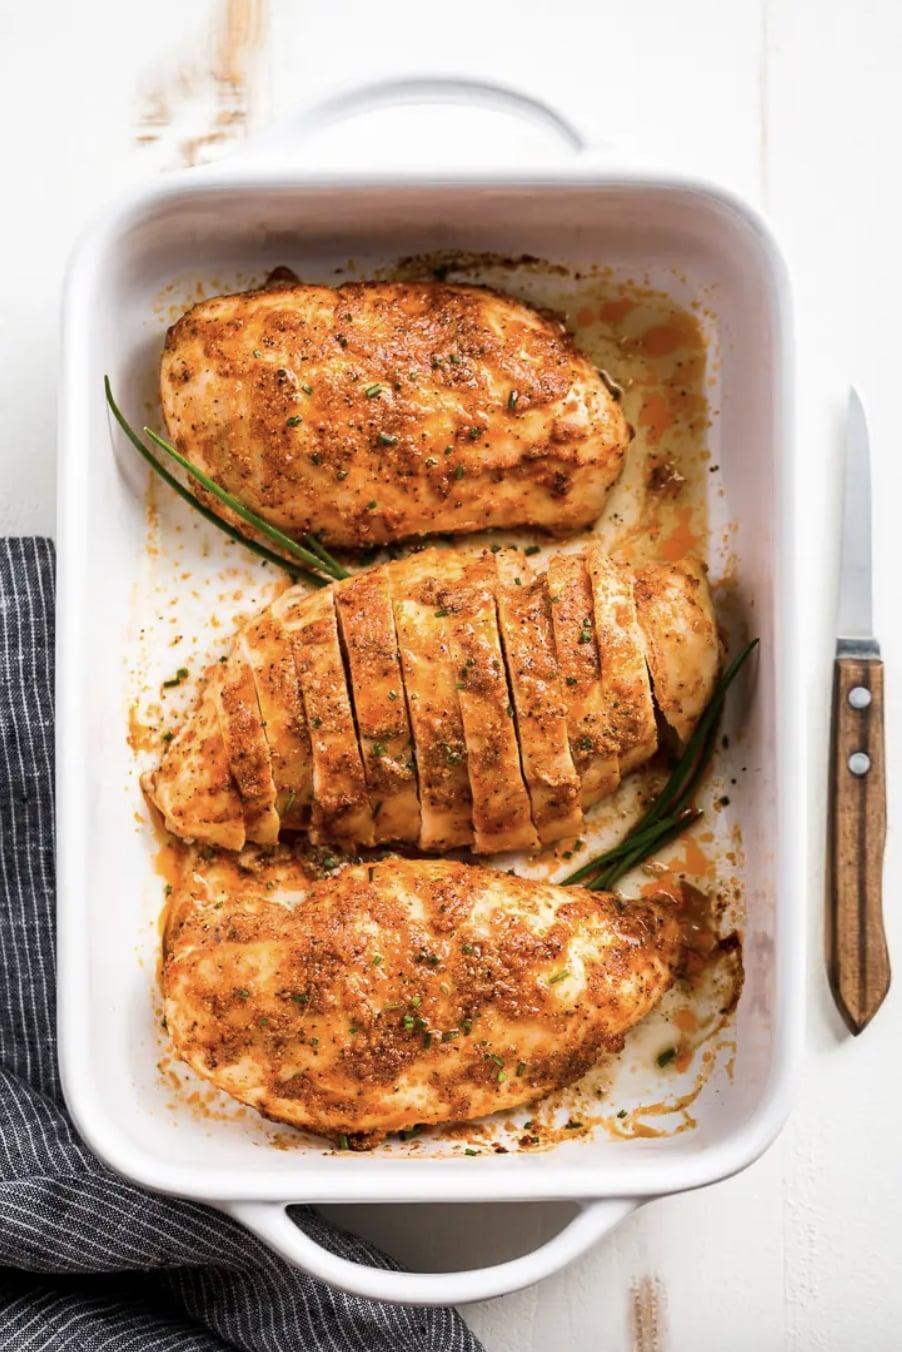 "<p>Forget the fish! At-home chefs are craving baked chicken instead. Made with ingredients found in the spice rack, this recipe takes the traditional chicken up a notch.</p> <p><strong>Get the recipe</strong>: <a href=""https://getinspiredeveryday.com/food/the-best-baked-chicken-breasts/"" class=""link rapid-noclick-resp"" rel=""nofollow noopener"" target=""_blank"" data-ylk=""slk:baked chicken"">baked chicken</a></p>"